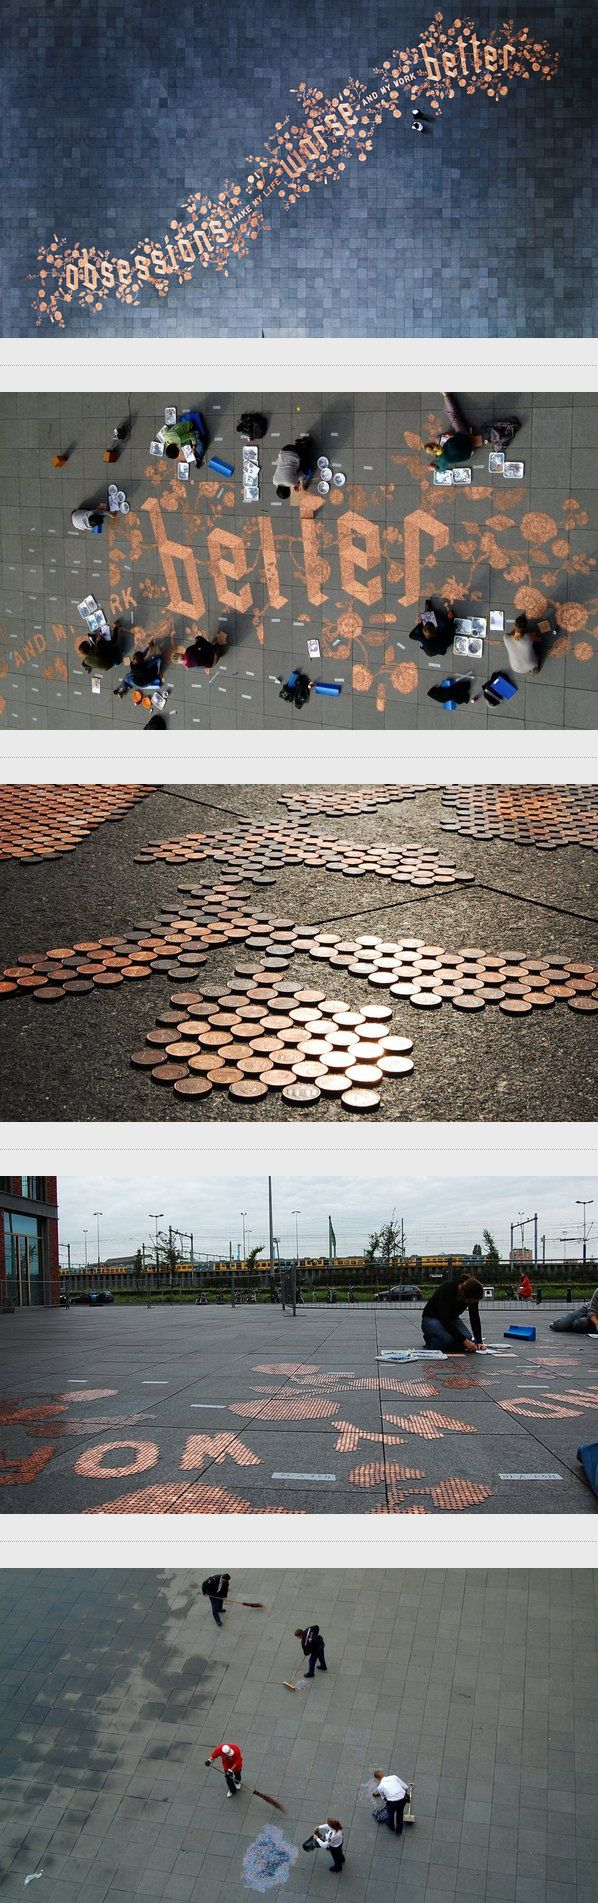 Obsessions Make My Life Worse and My Work Better by Sagmeister & Walsh, via Behance